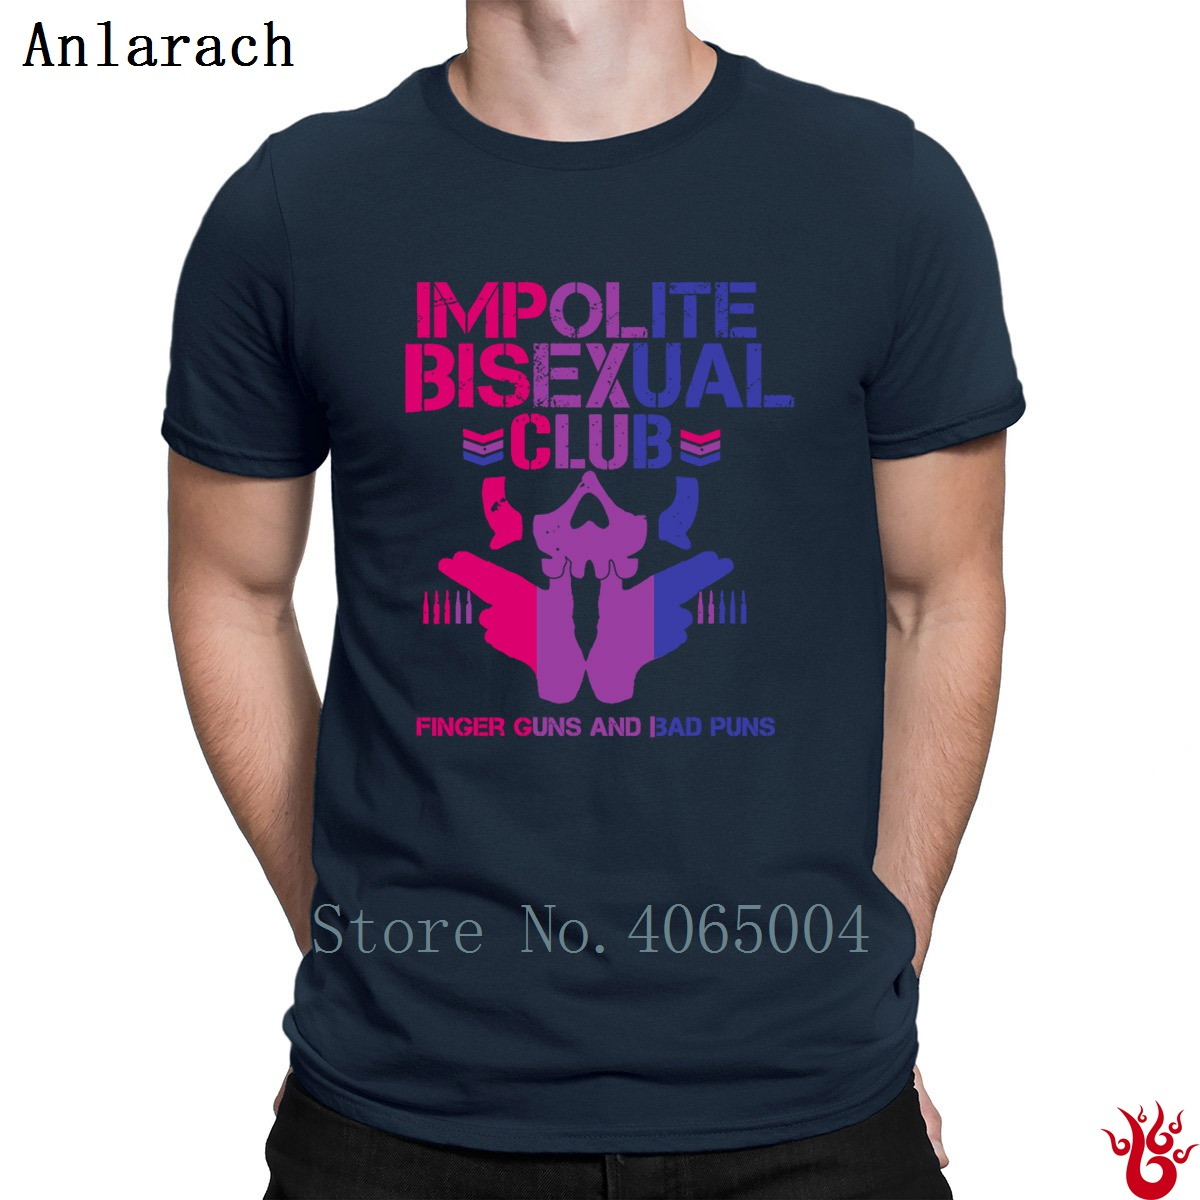 Impolite <font><b>Bisexual</b></font> Club T-Shirt Letters Custom Pop <font><b>Top</b></font> Tee Short Sleeve Men Tshirt Spring Cute Pictures S-3xl Basic image